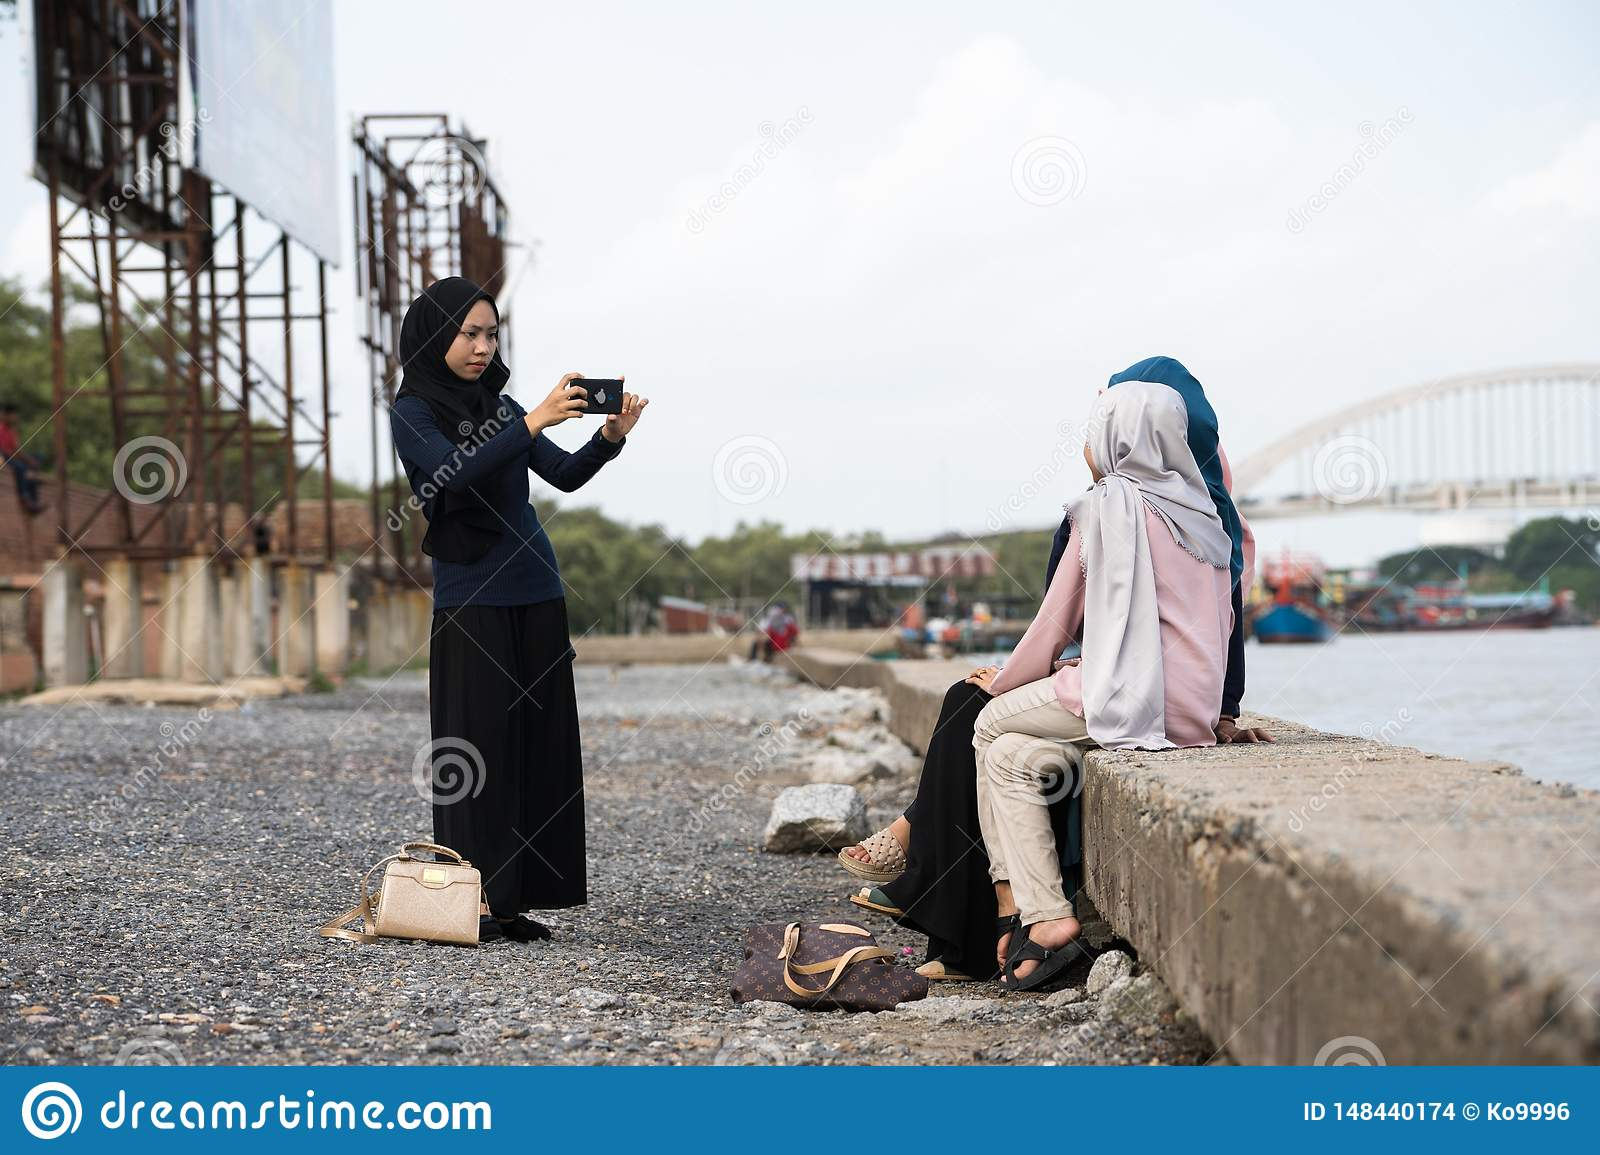 Asian Hijab Girl Taking Photo Editorial Stock Image - Image Of Friends, Adult 148440174-8419